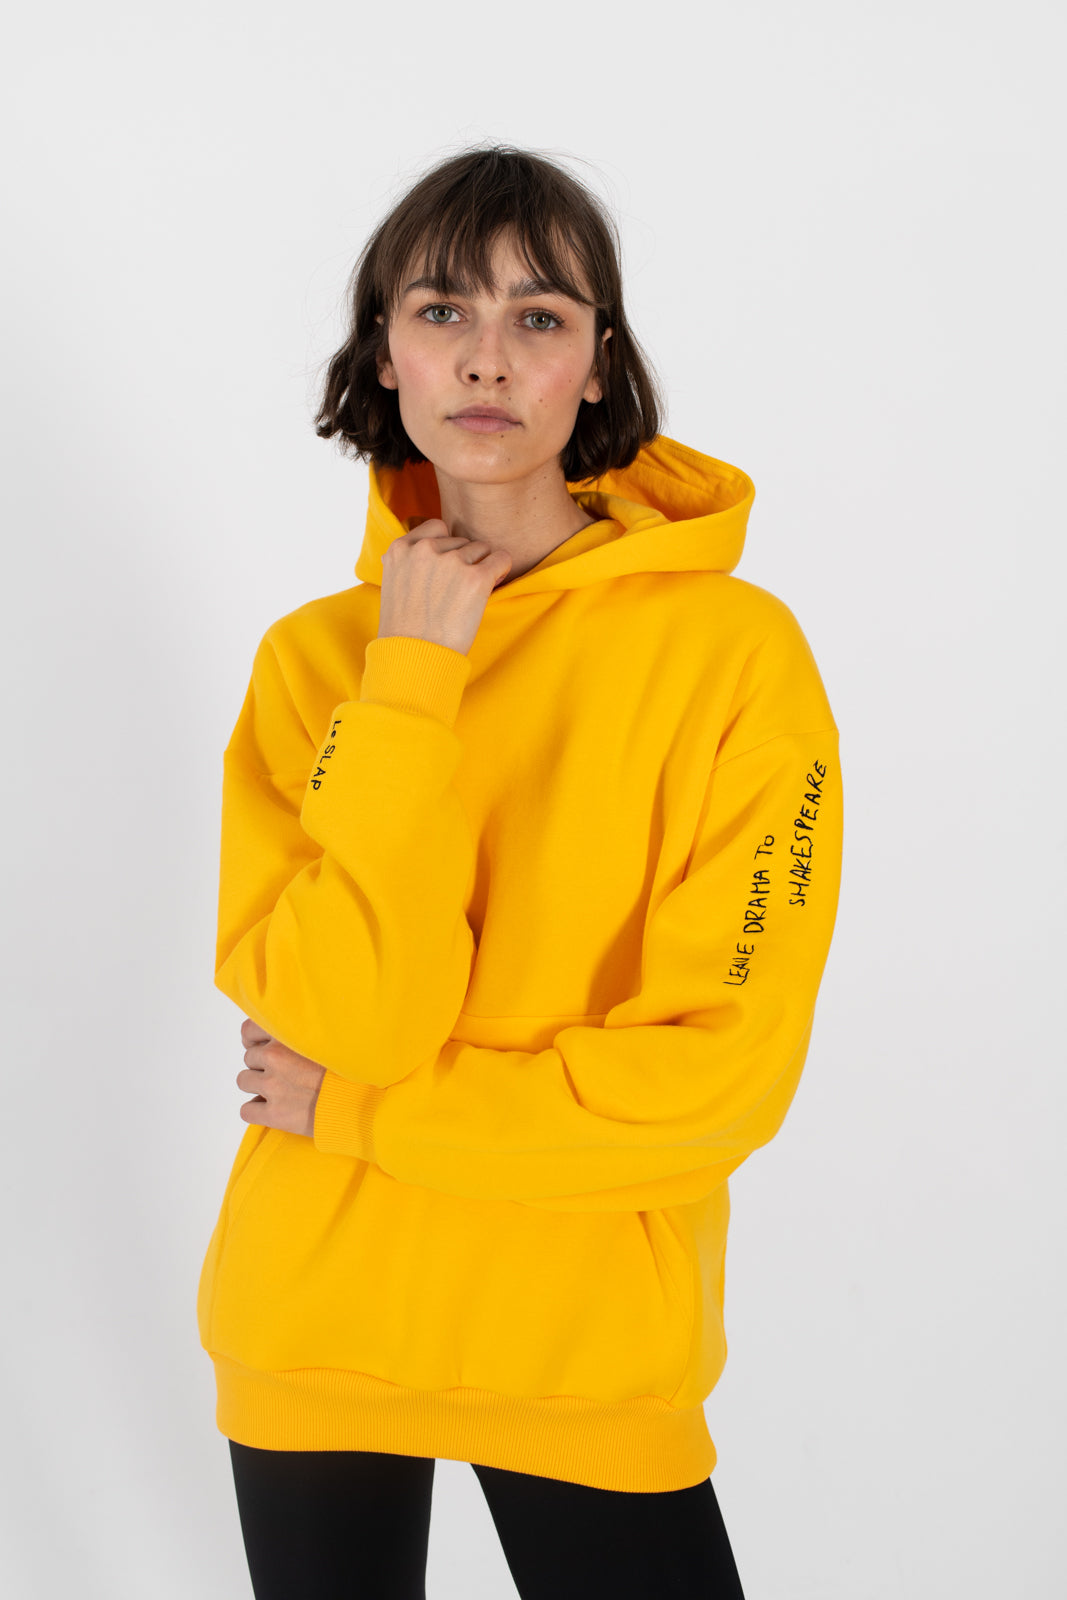 le slap yellow cotton hoodie oversized embroidered quote madress